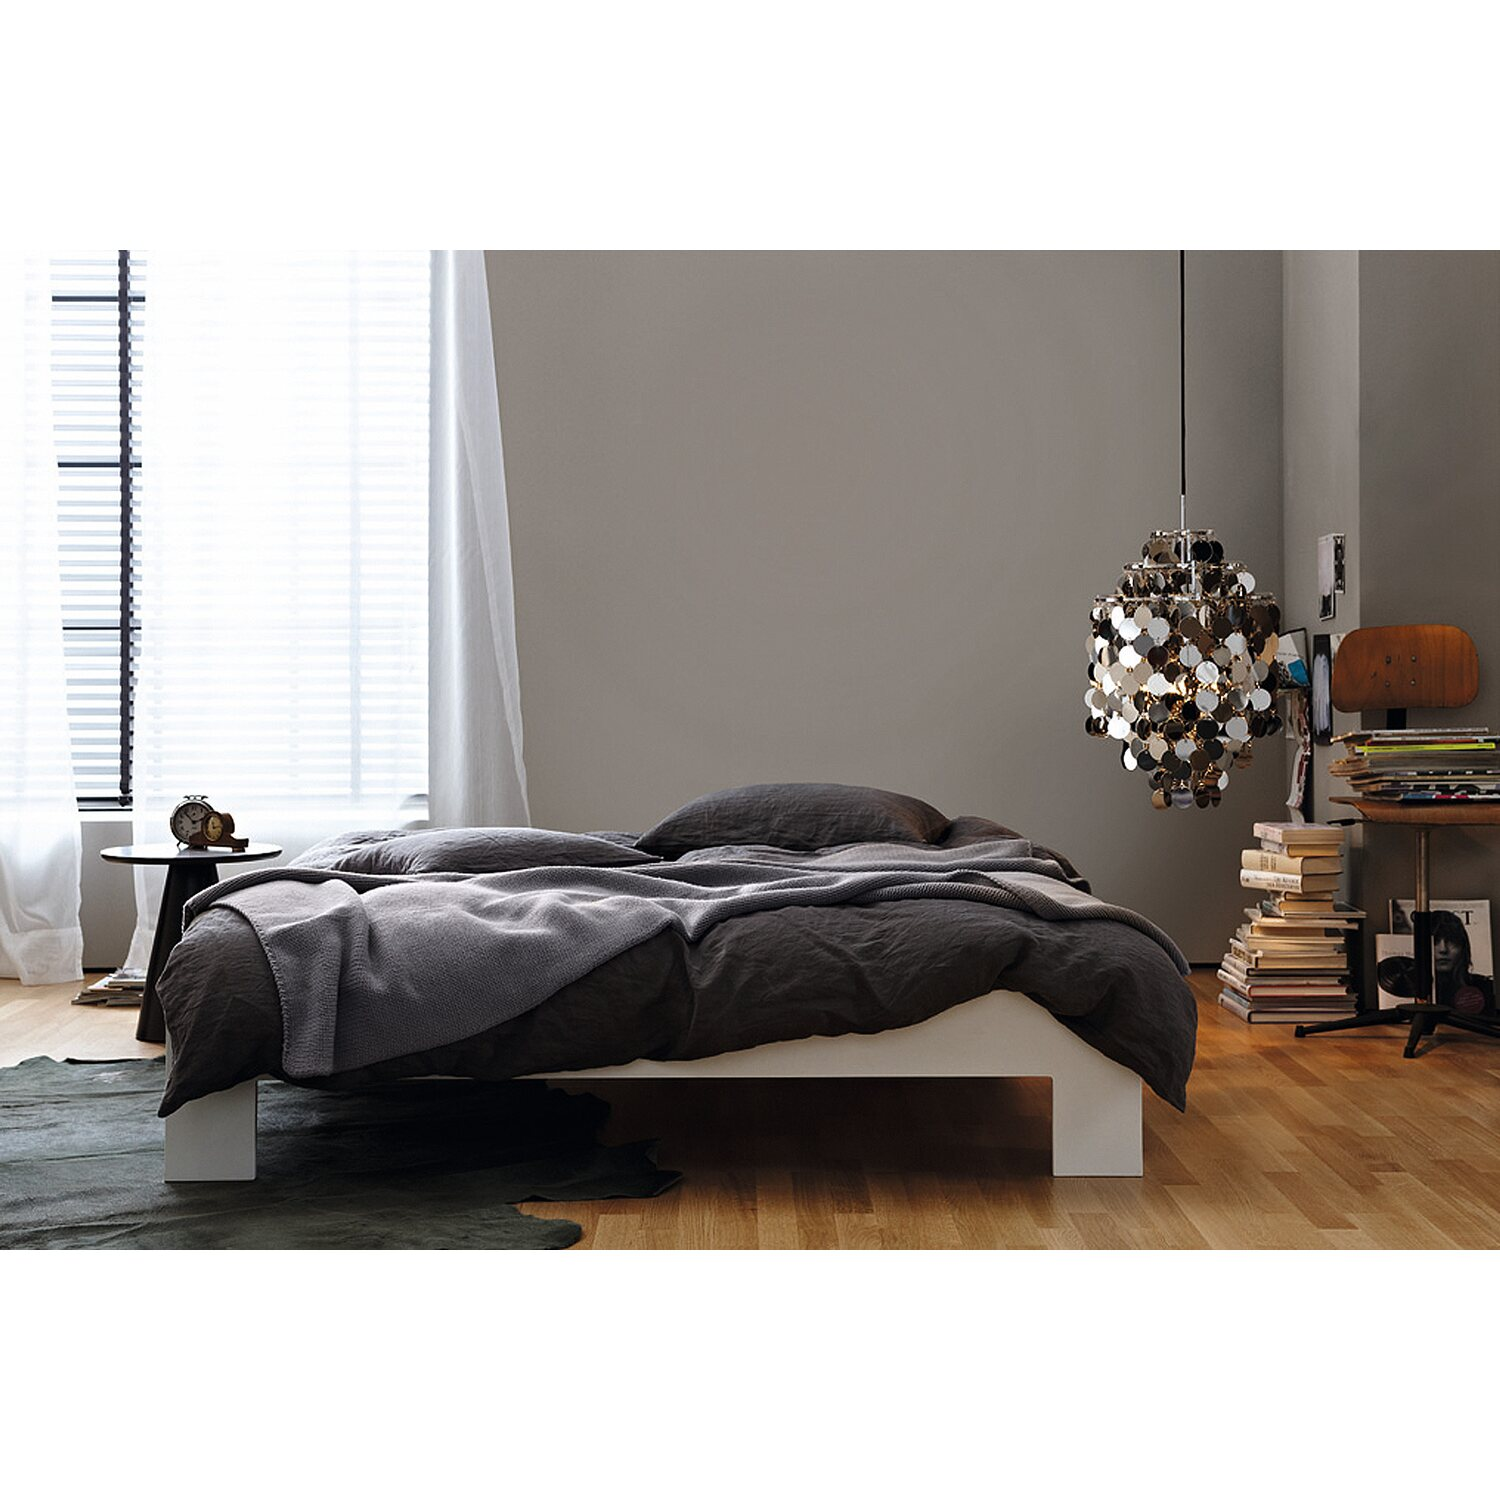 sch ner wohnen trendfarbe manhattan seidengl nzend 2 5 l kaufen bei obi. Black Bedroom Furniture Sets. Home Design Ideas